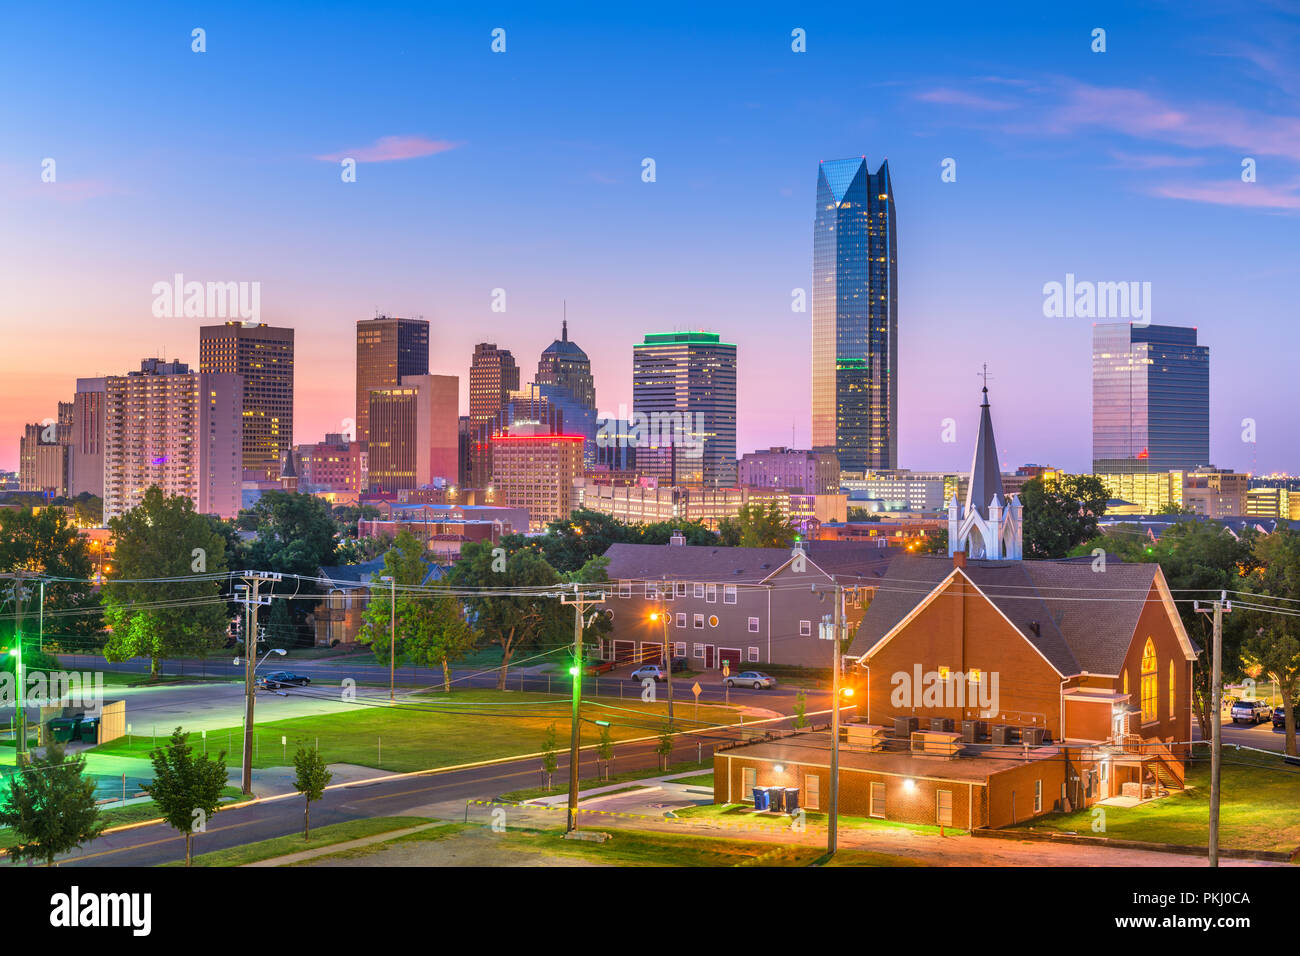 Oklahoma City, Oklahoma, USA Downtown Skyline in der Dämmerung. Stockbild